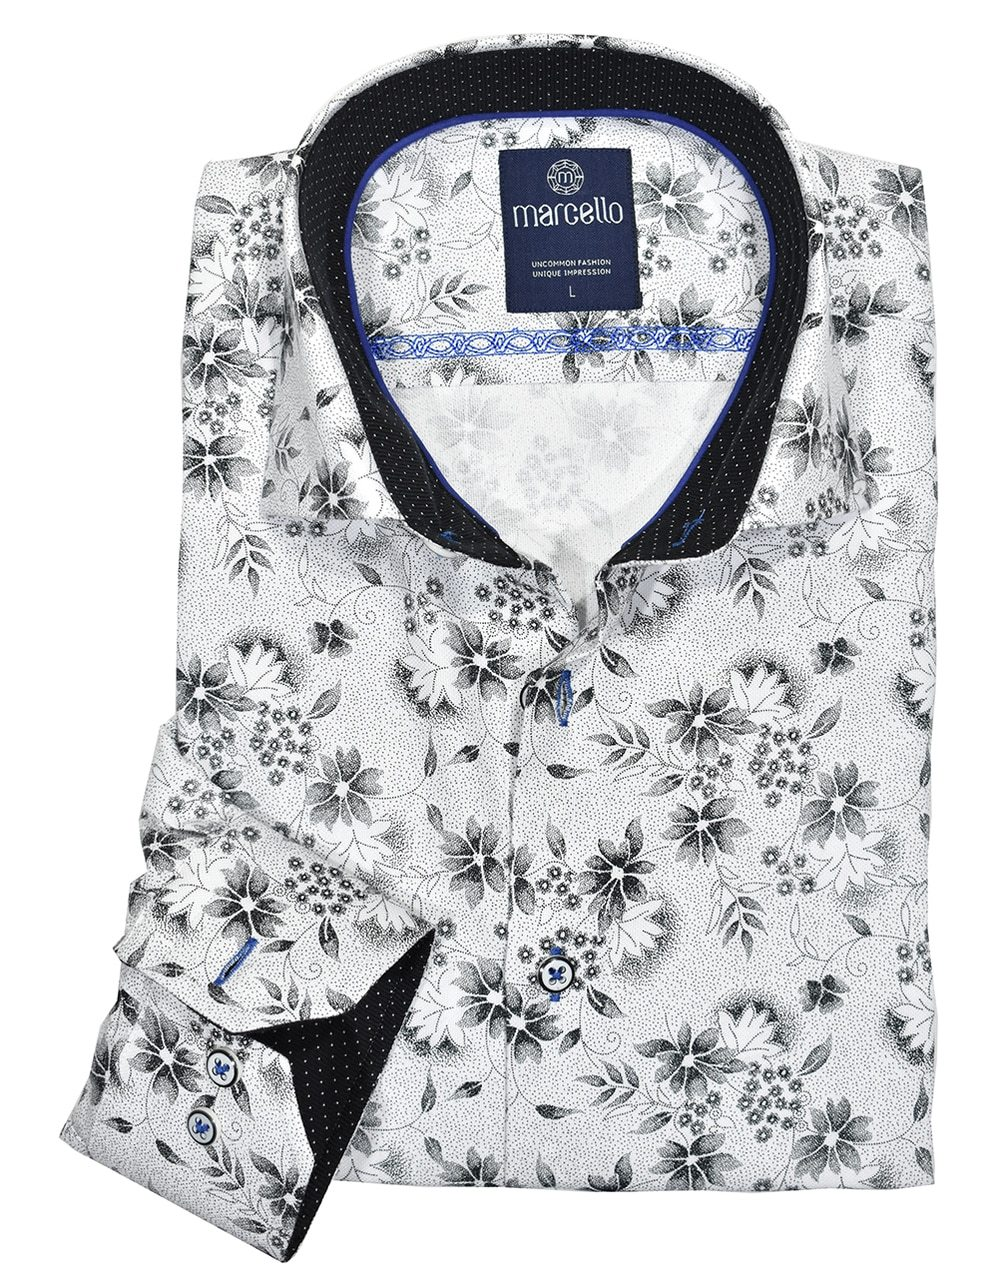 W1046 Graphite Floral Cotton Shirt - Marcello Sport